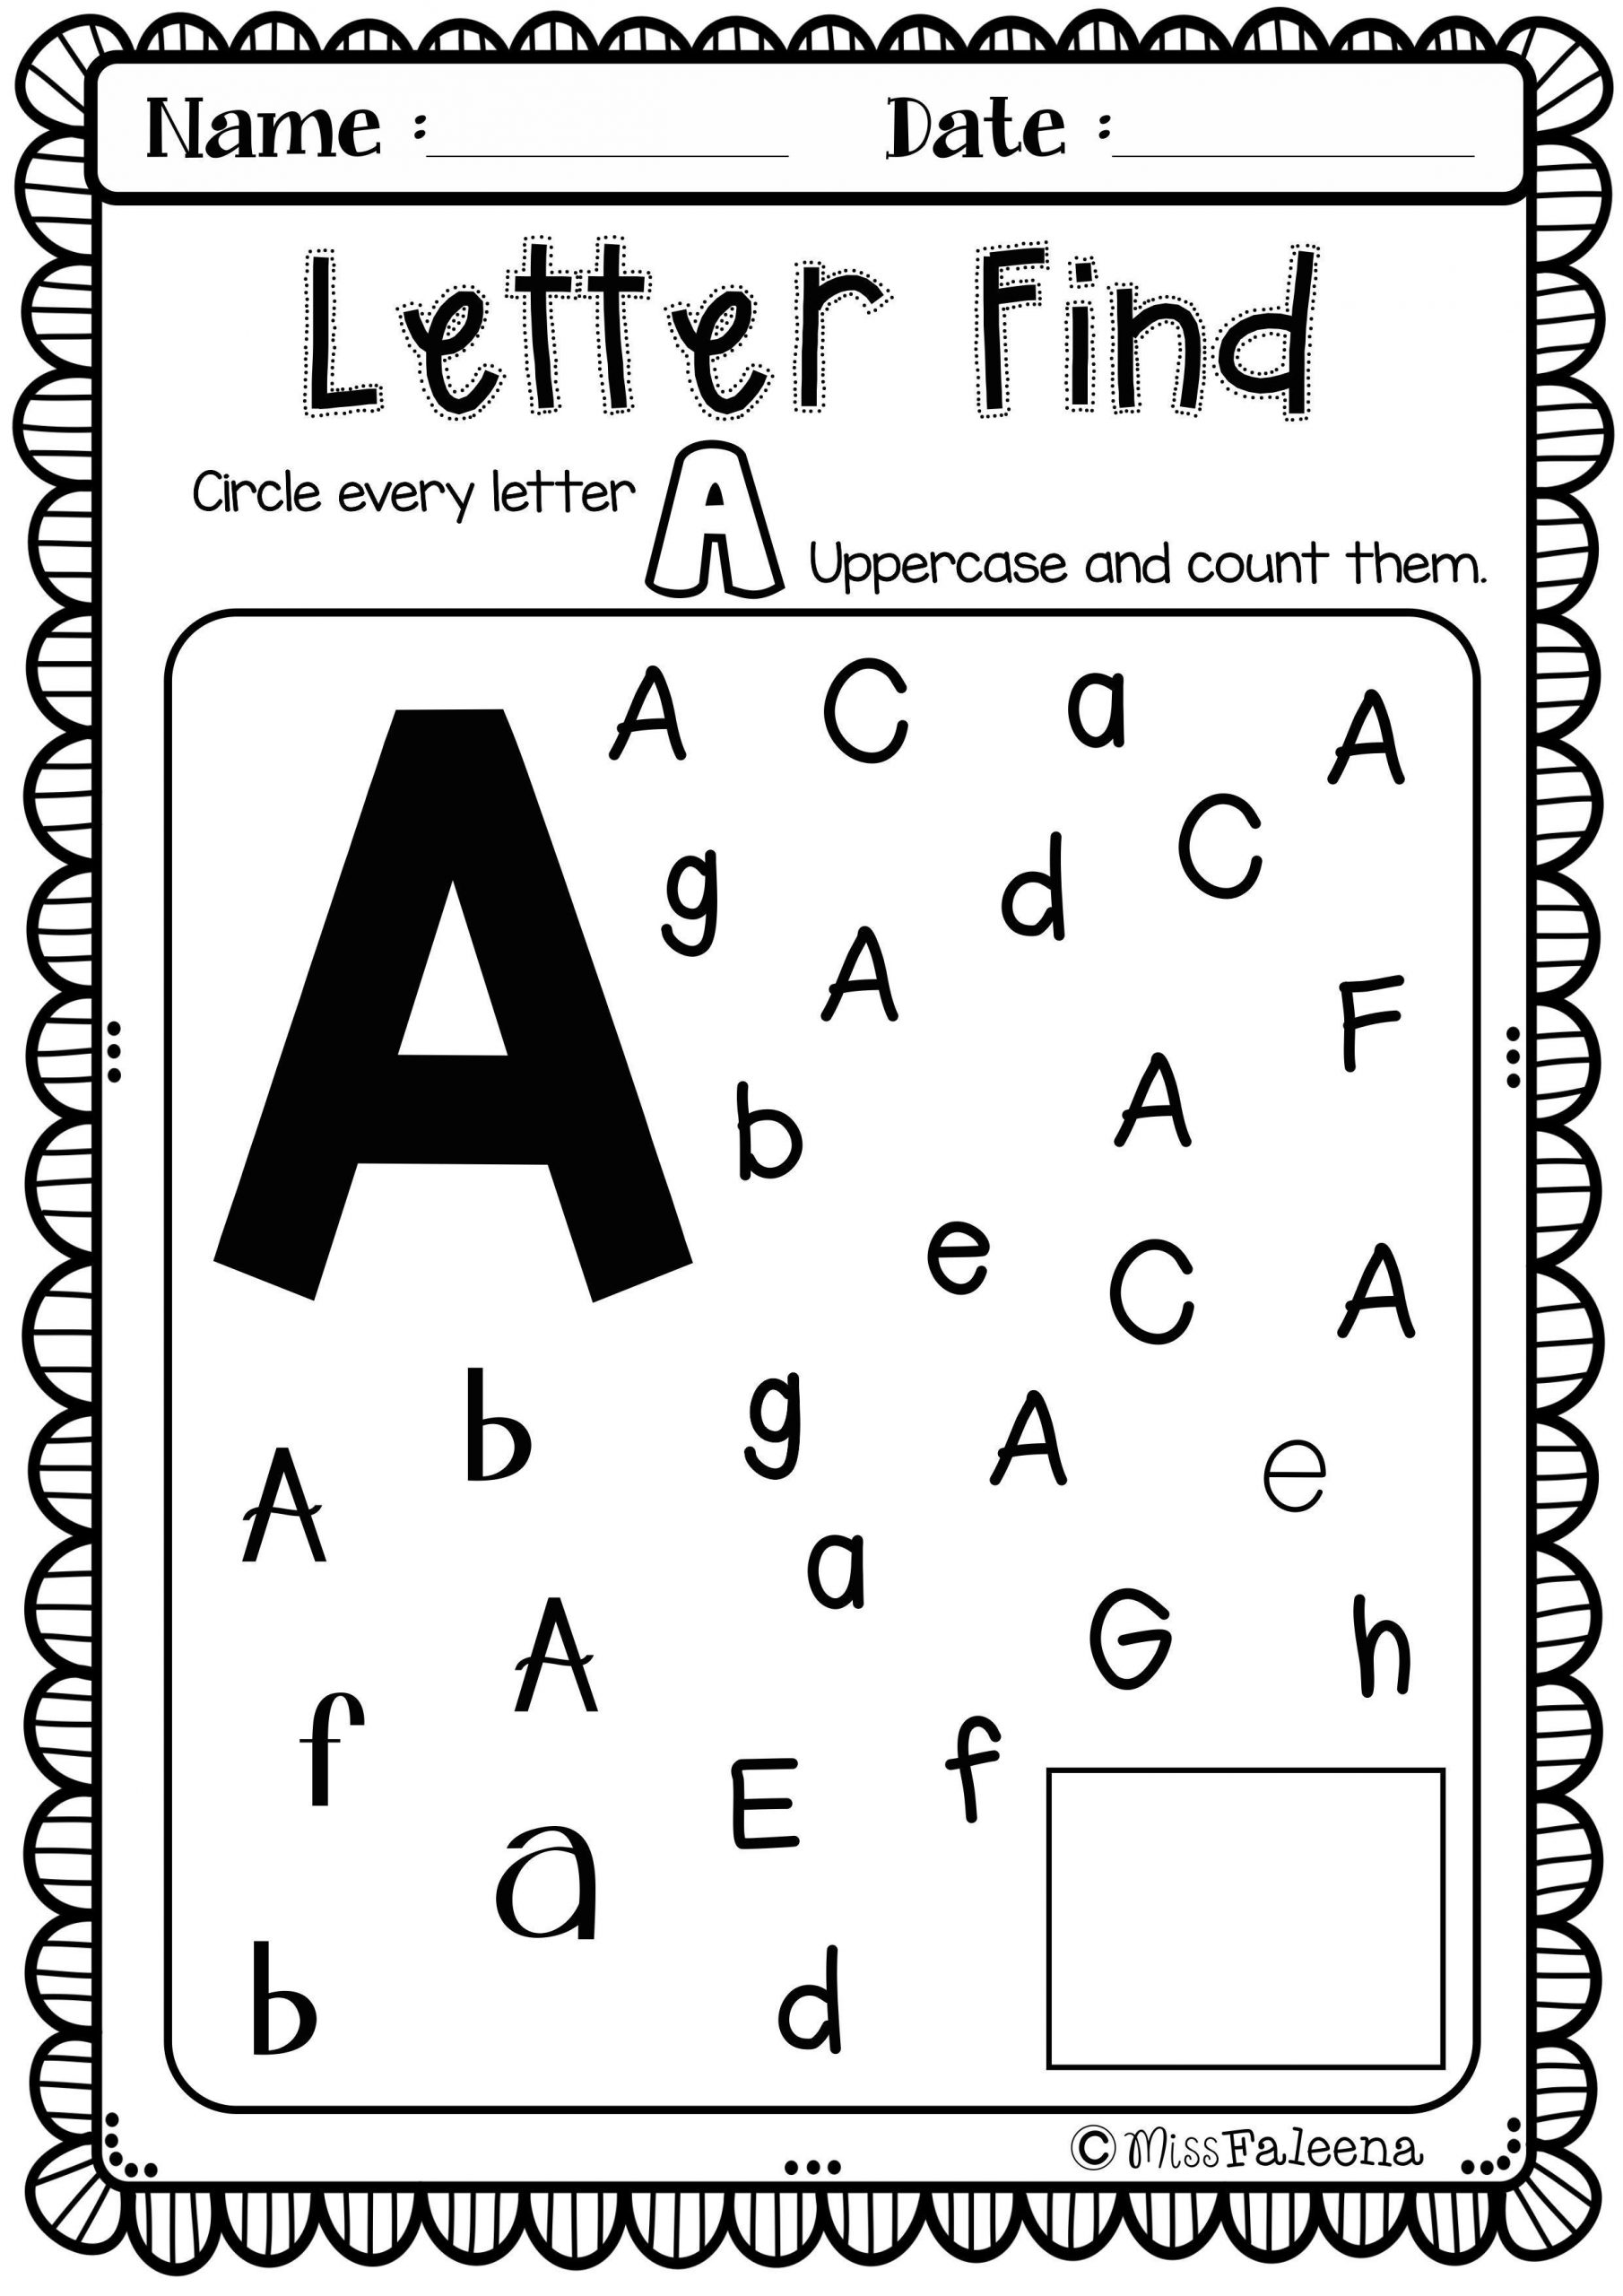 Free Letter of the Week A is designed to help teach letter A